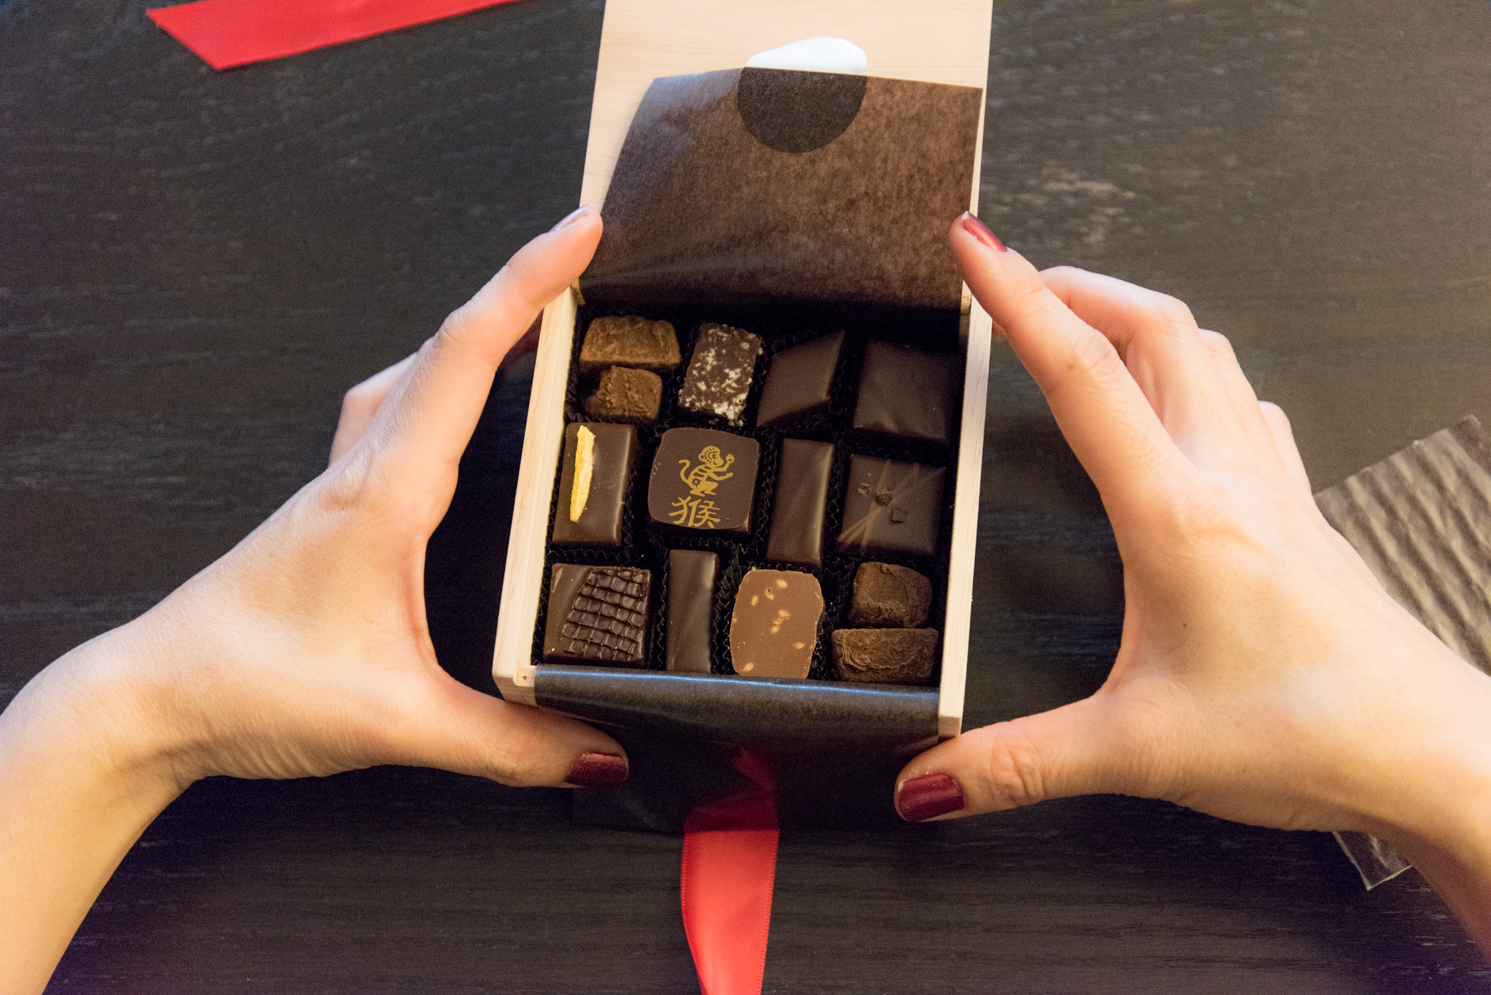 ROCK MAMA NYC LIFESTYLE BLOG - LA BURDICK LUNAR NEW YEAR CHOCOLATES